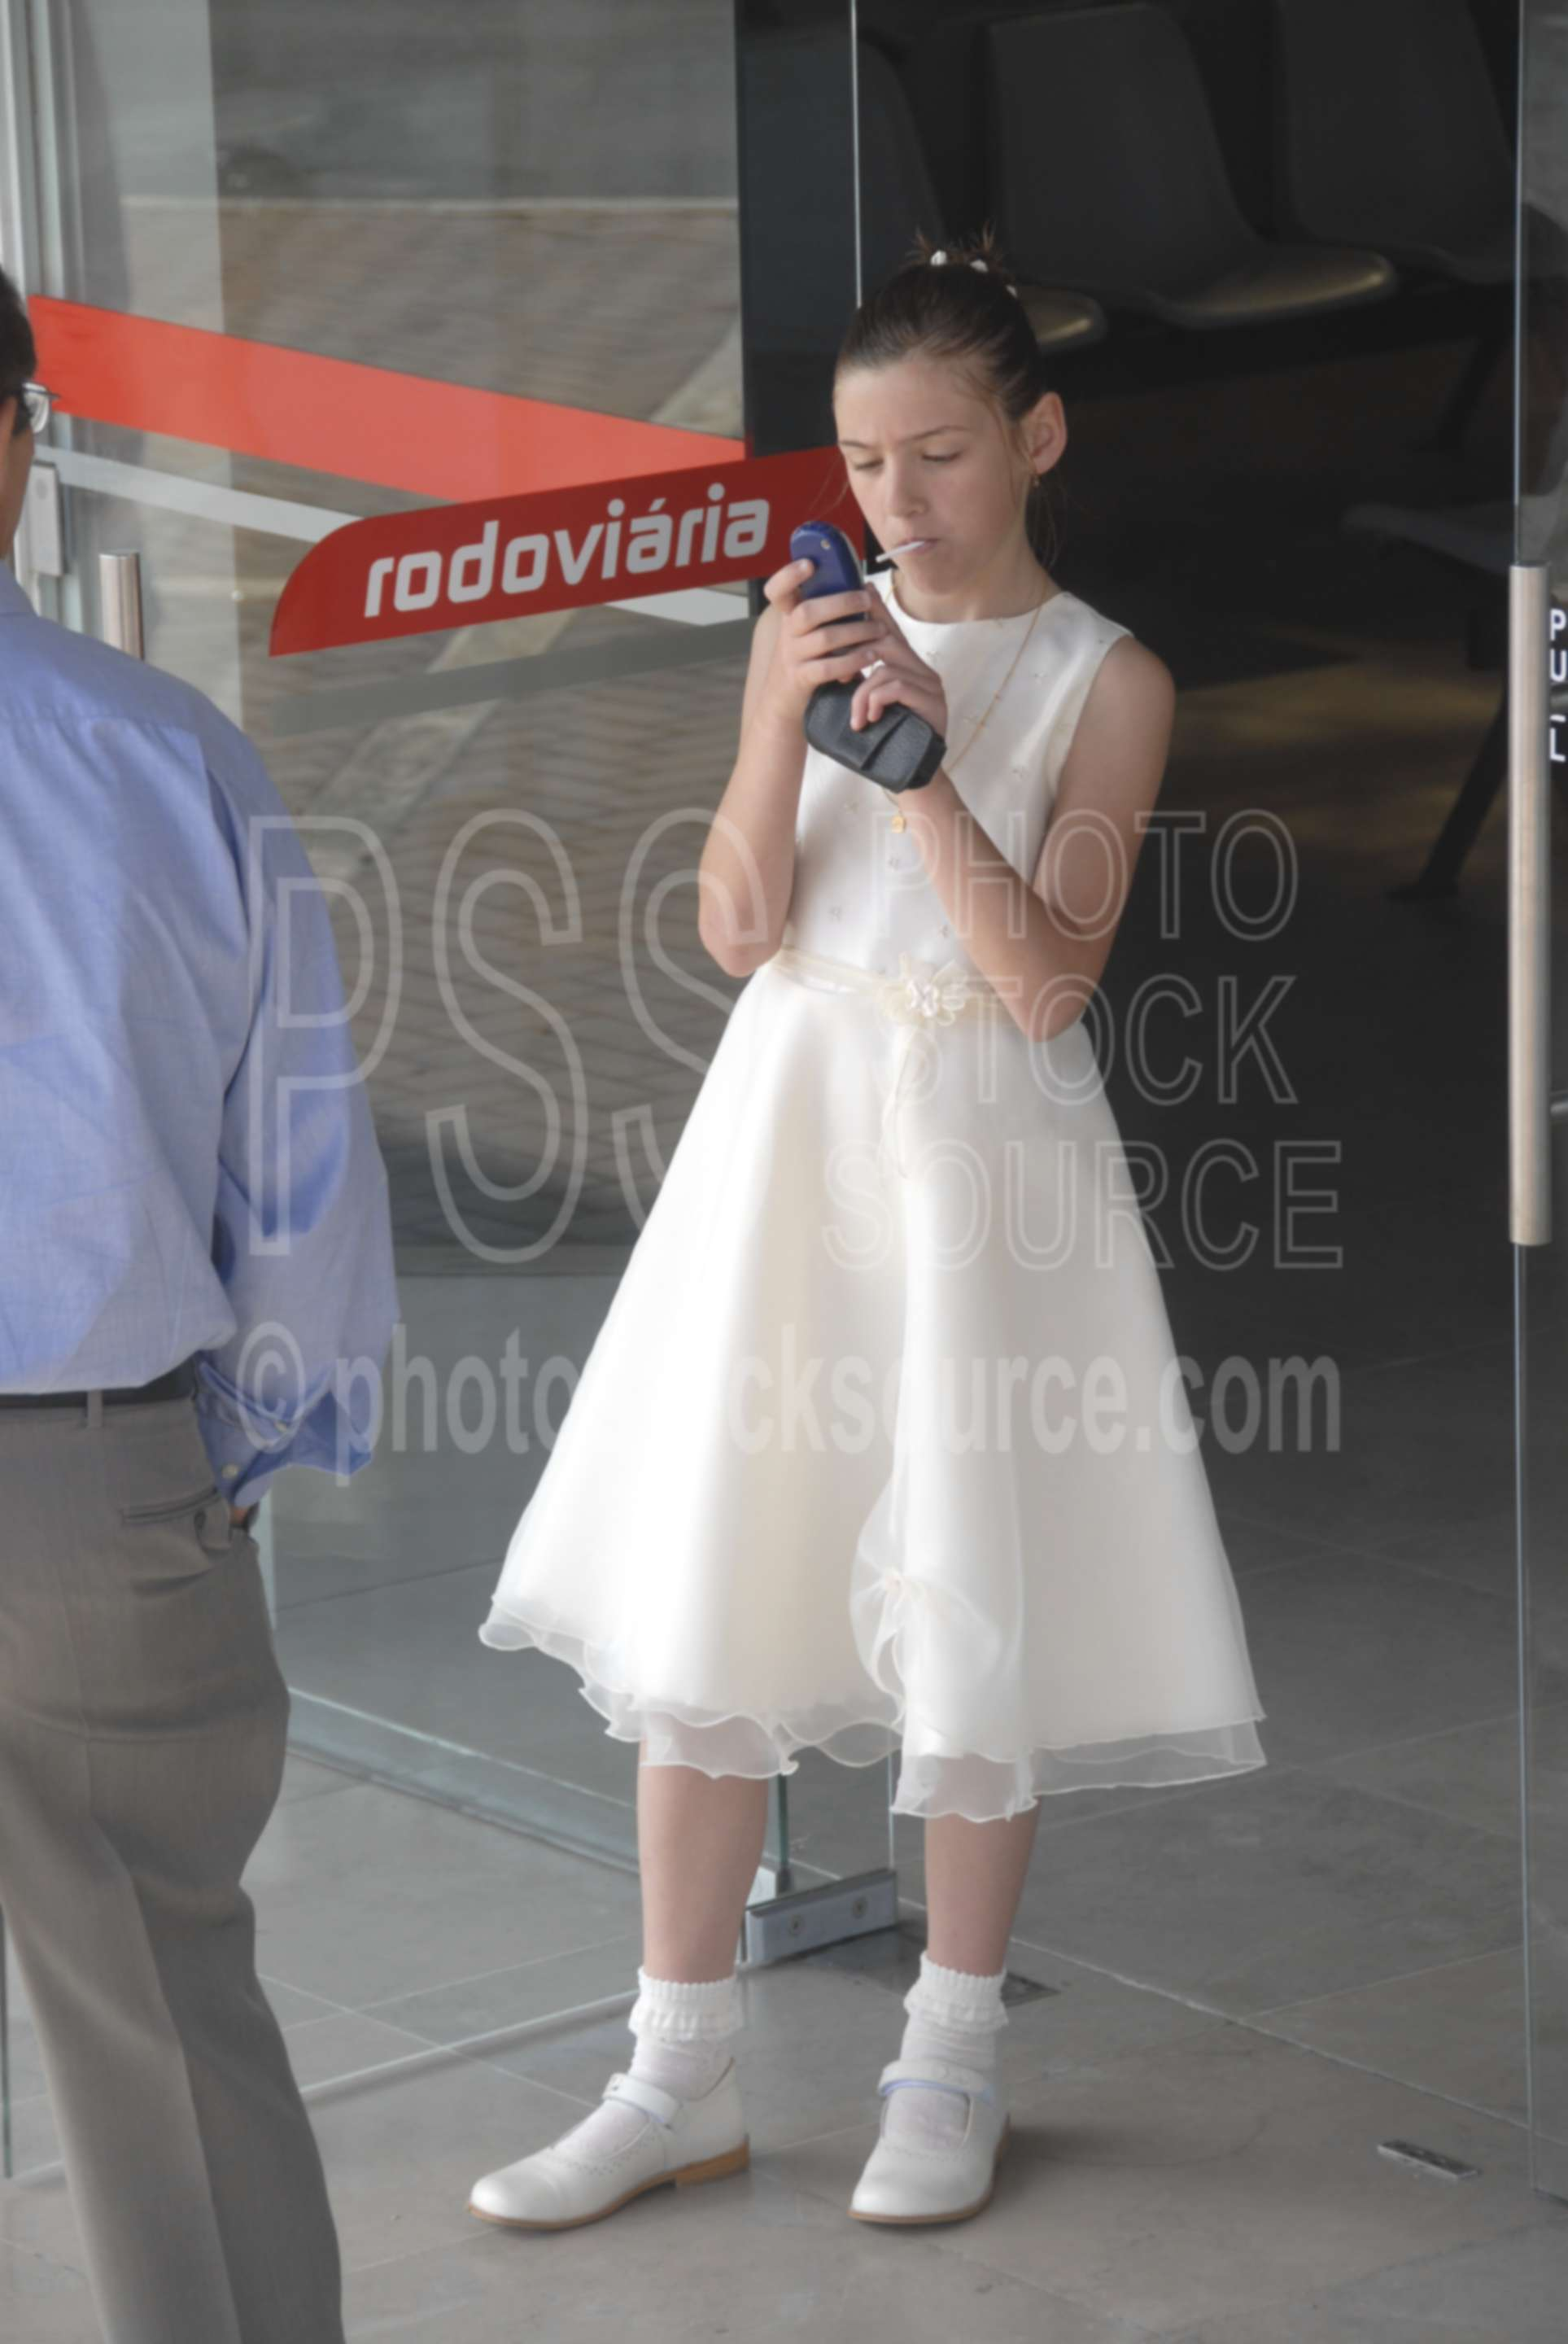 Waiting for a Bus,father,daughter,bus station,girl,young girl,cell phone,cellphone,pretty dress